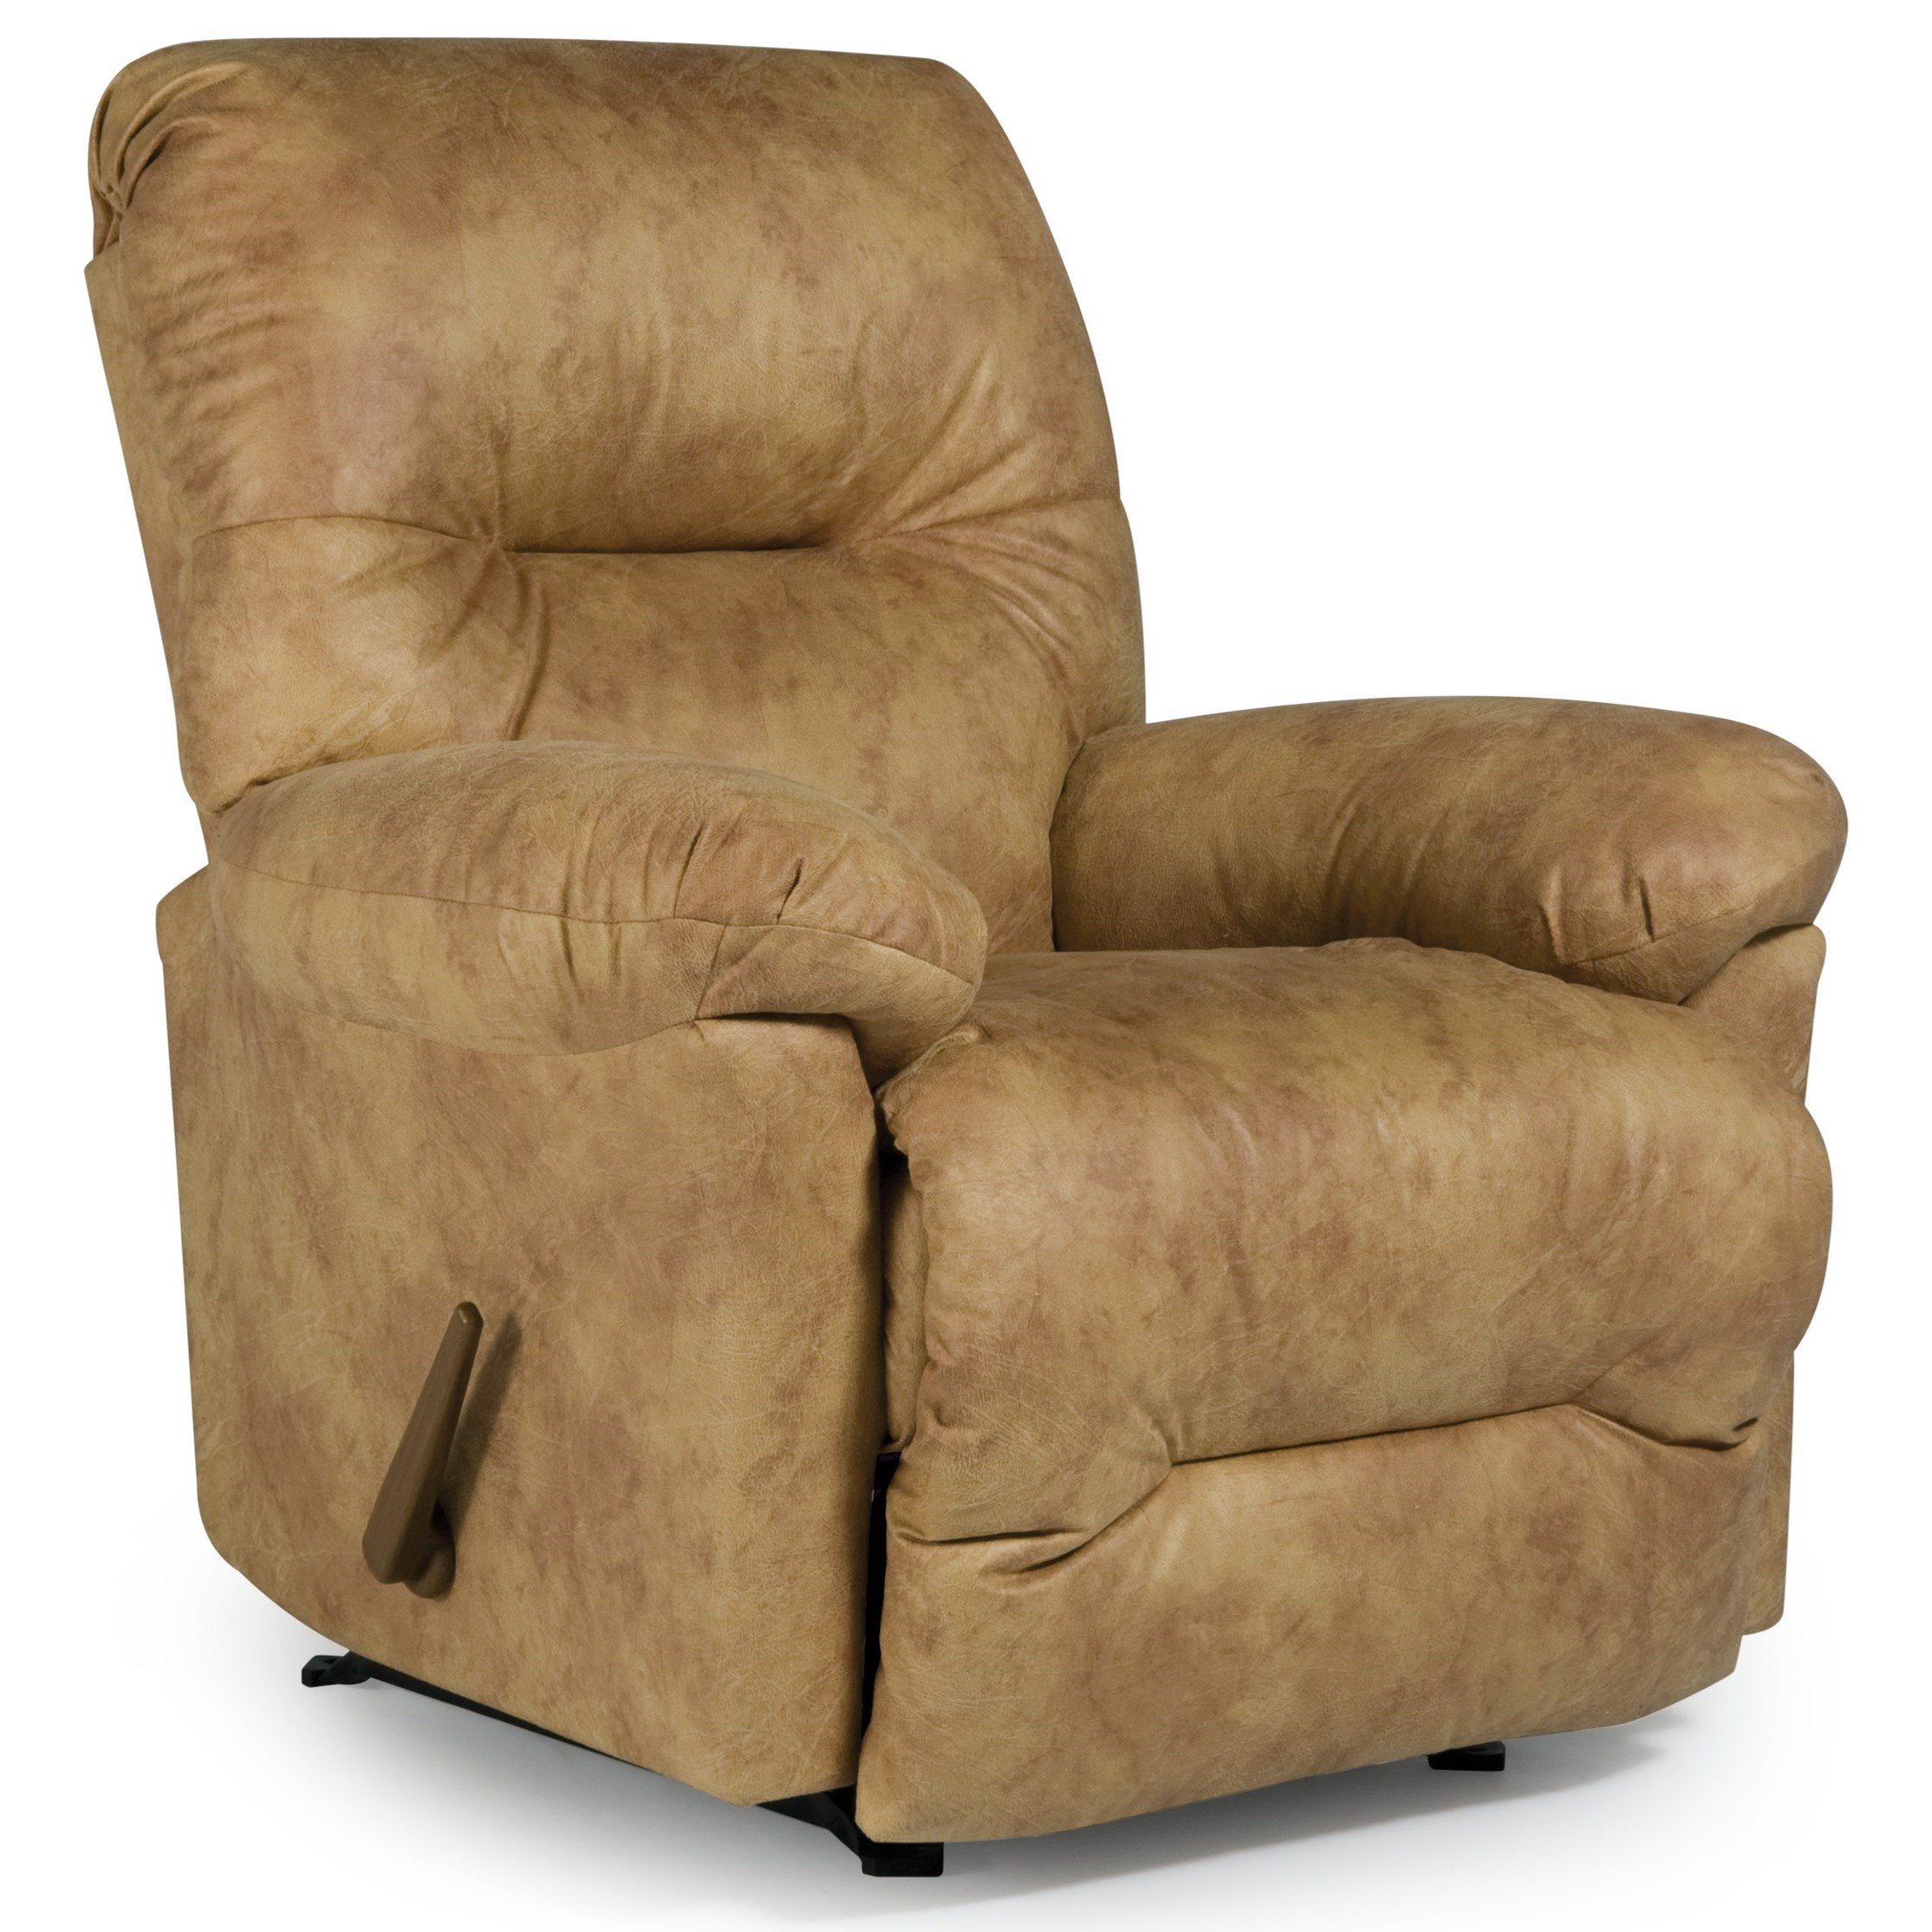 Best Home Furnishings Recliners Medium Rodney Space